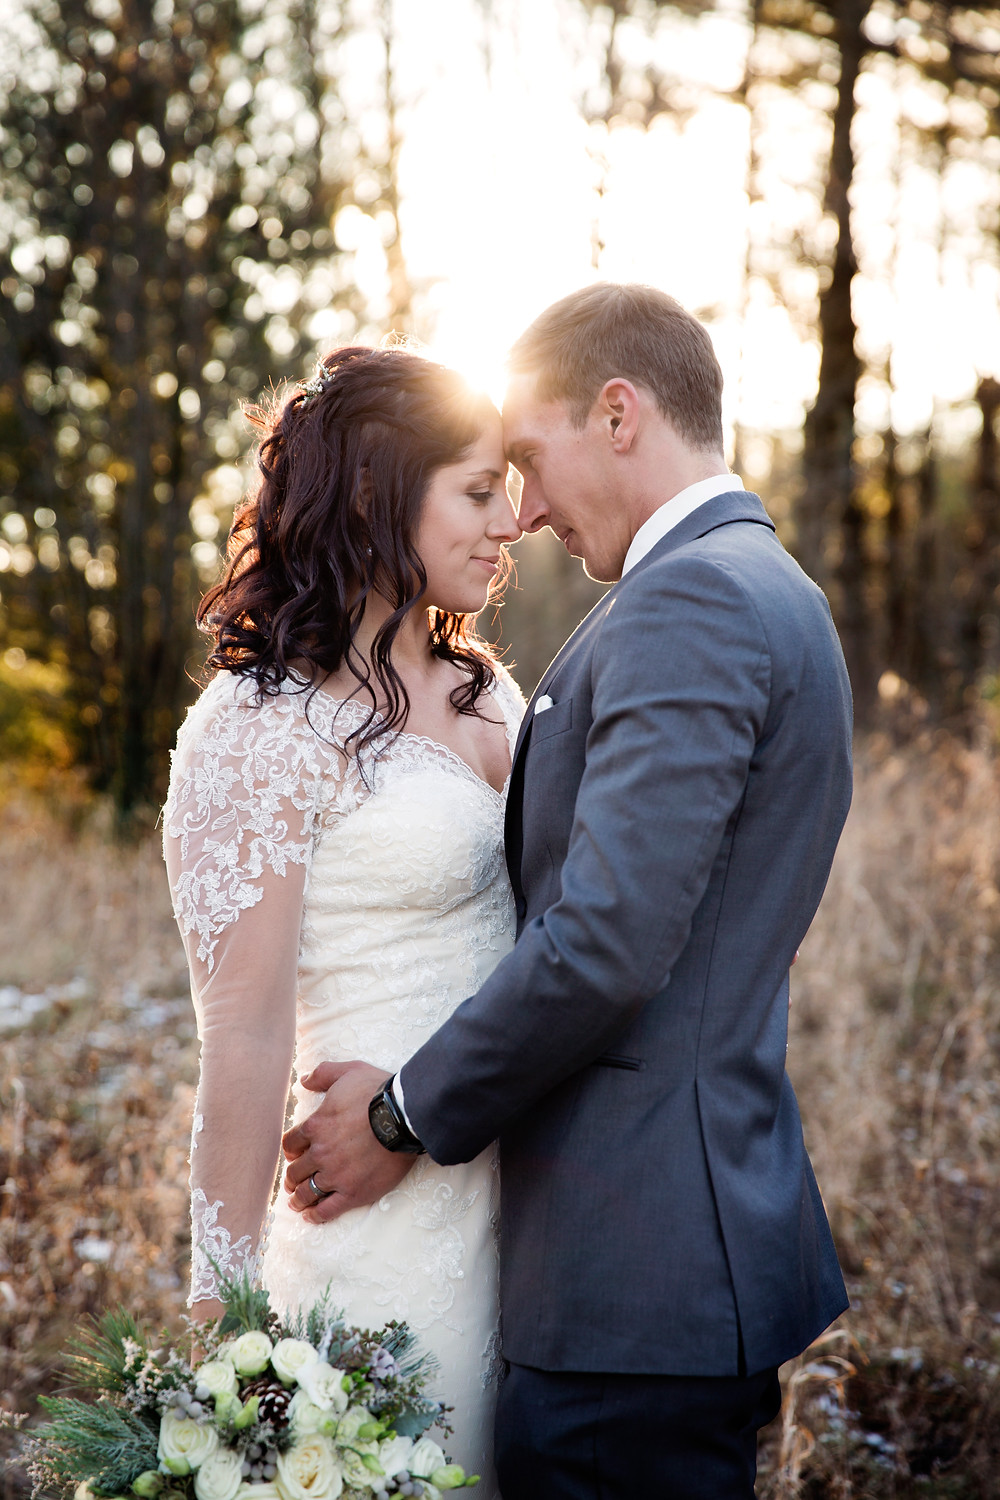 sunset, golden hour, bride, groom, wedding, photography